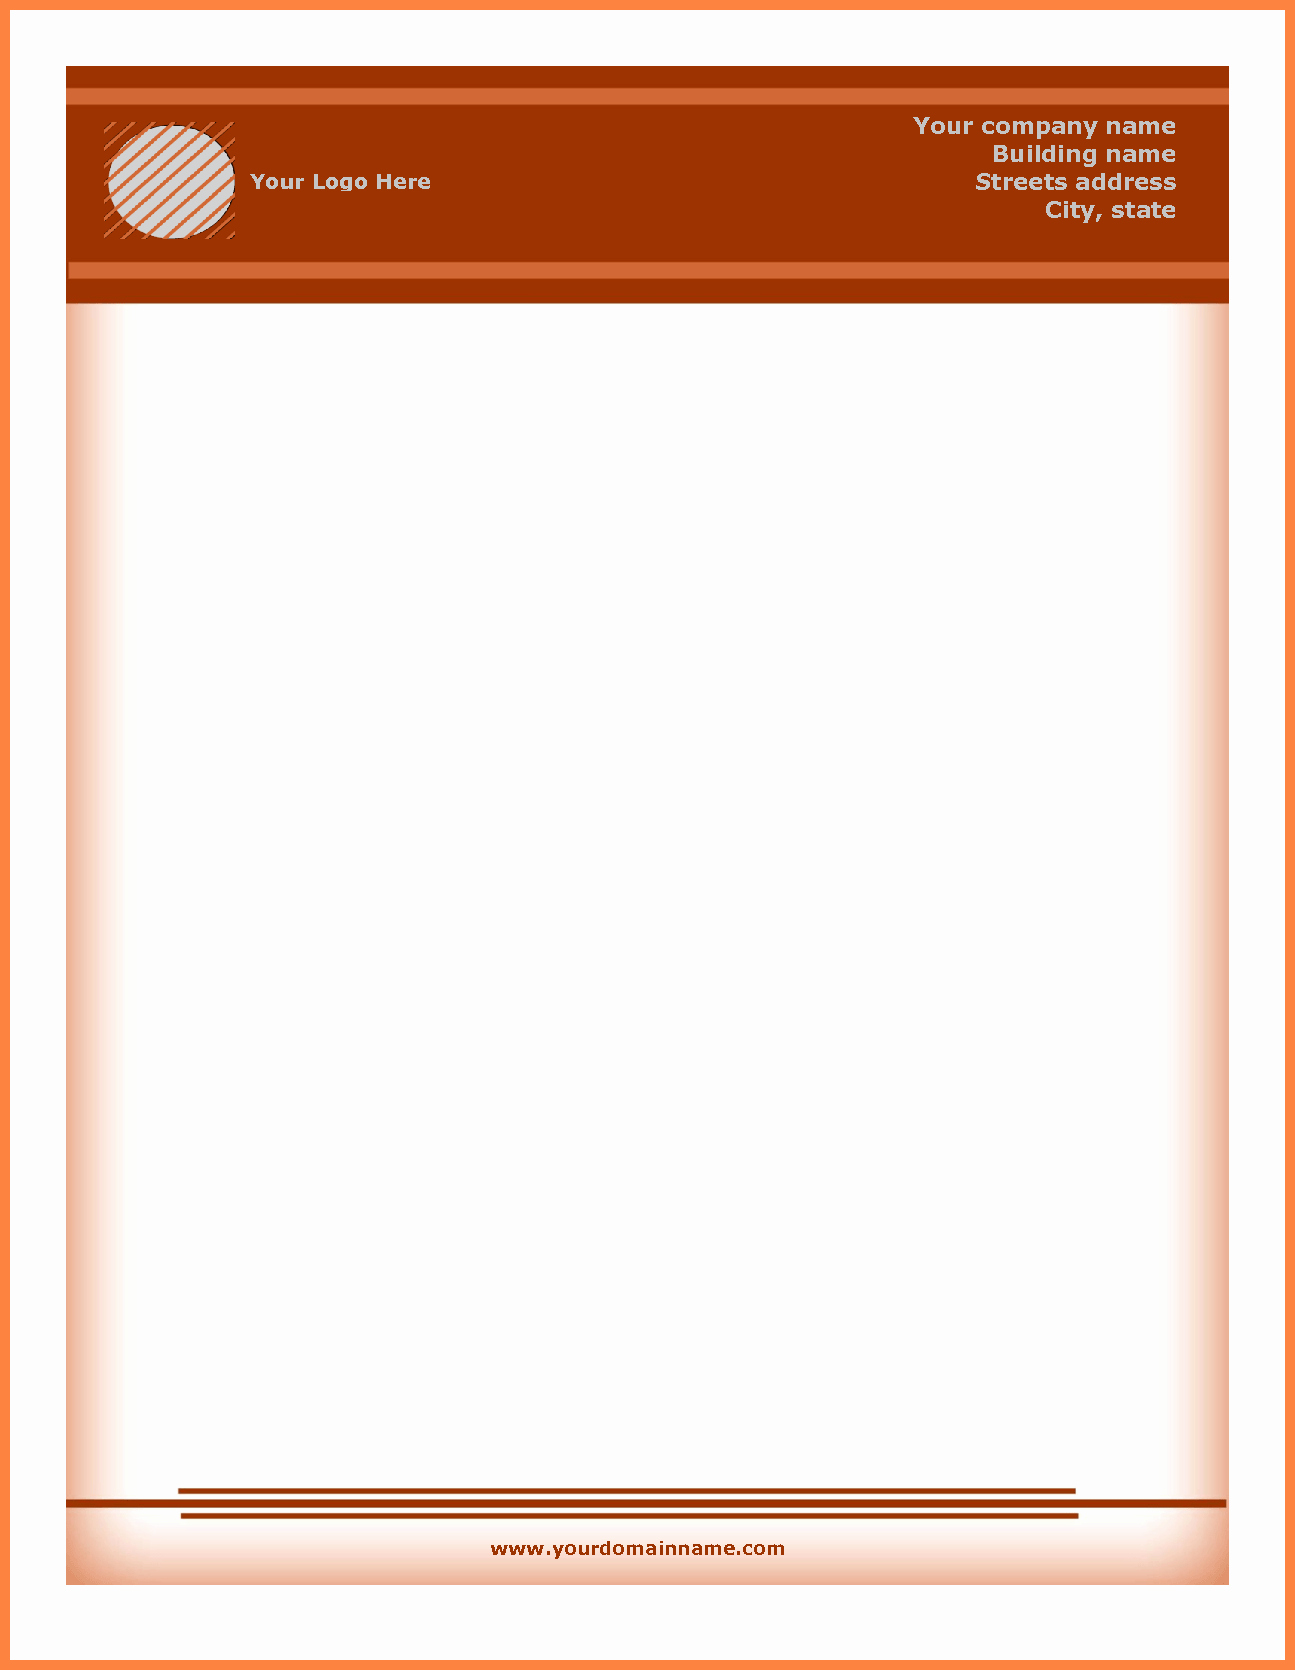 Free Download Business Letter Template Inspirational 11 Letterhead Templates